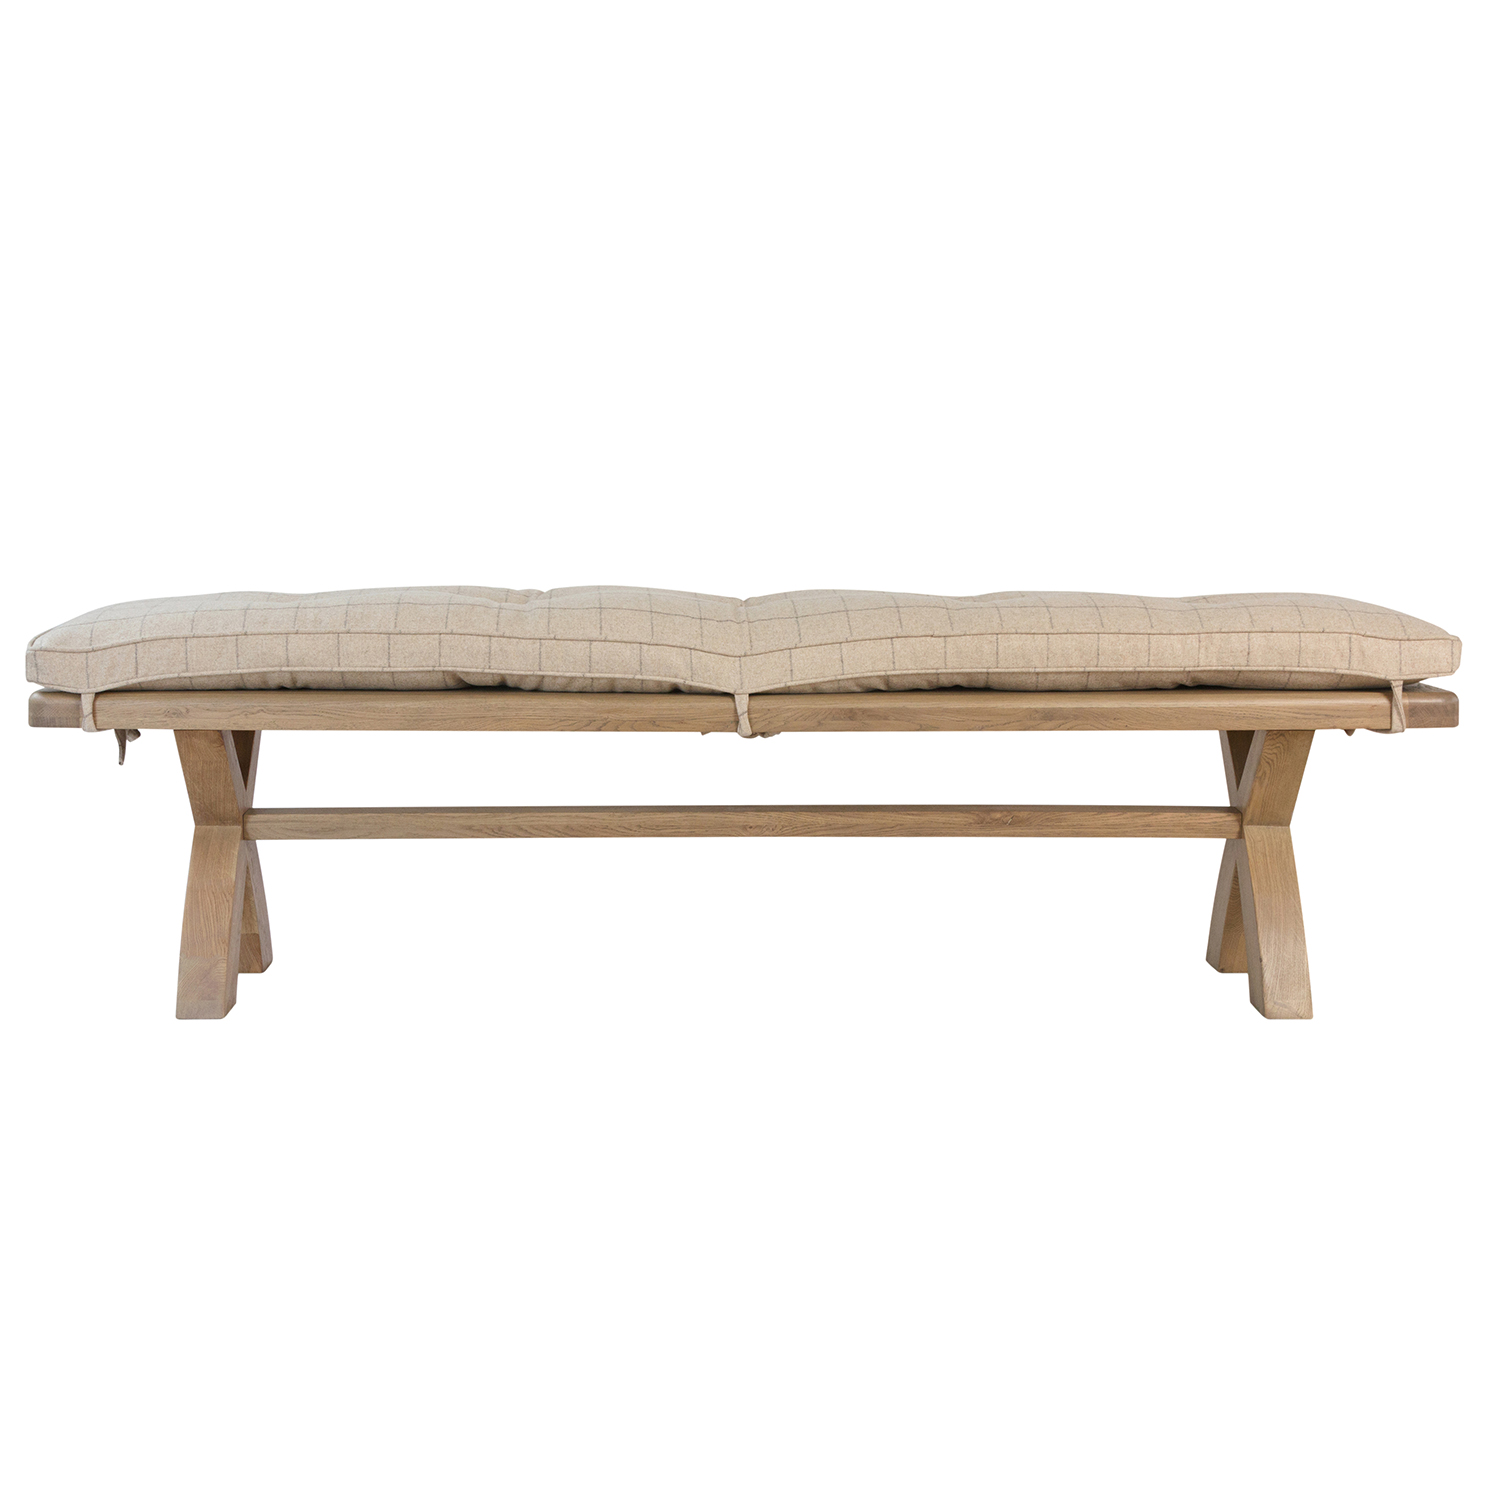 Heritage Oak Bench - Natural Check Cushion Only